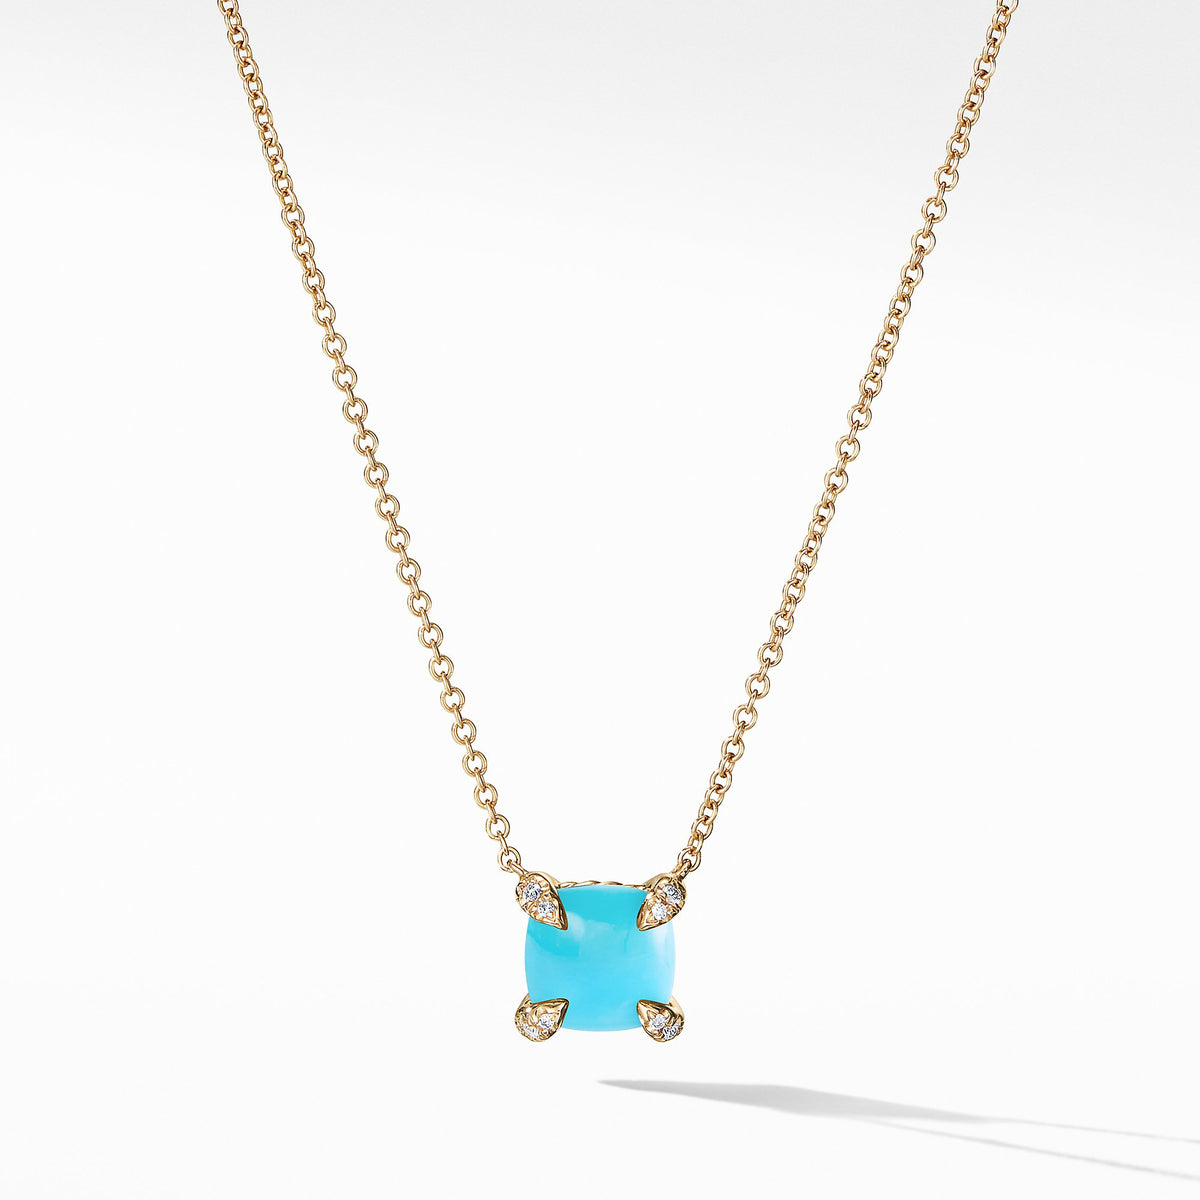 Chⴥlaine Pendant Necklace with Turquoise and Diamonds in 18K Gold